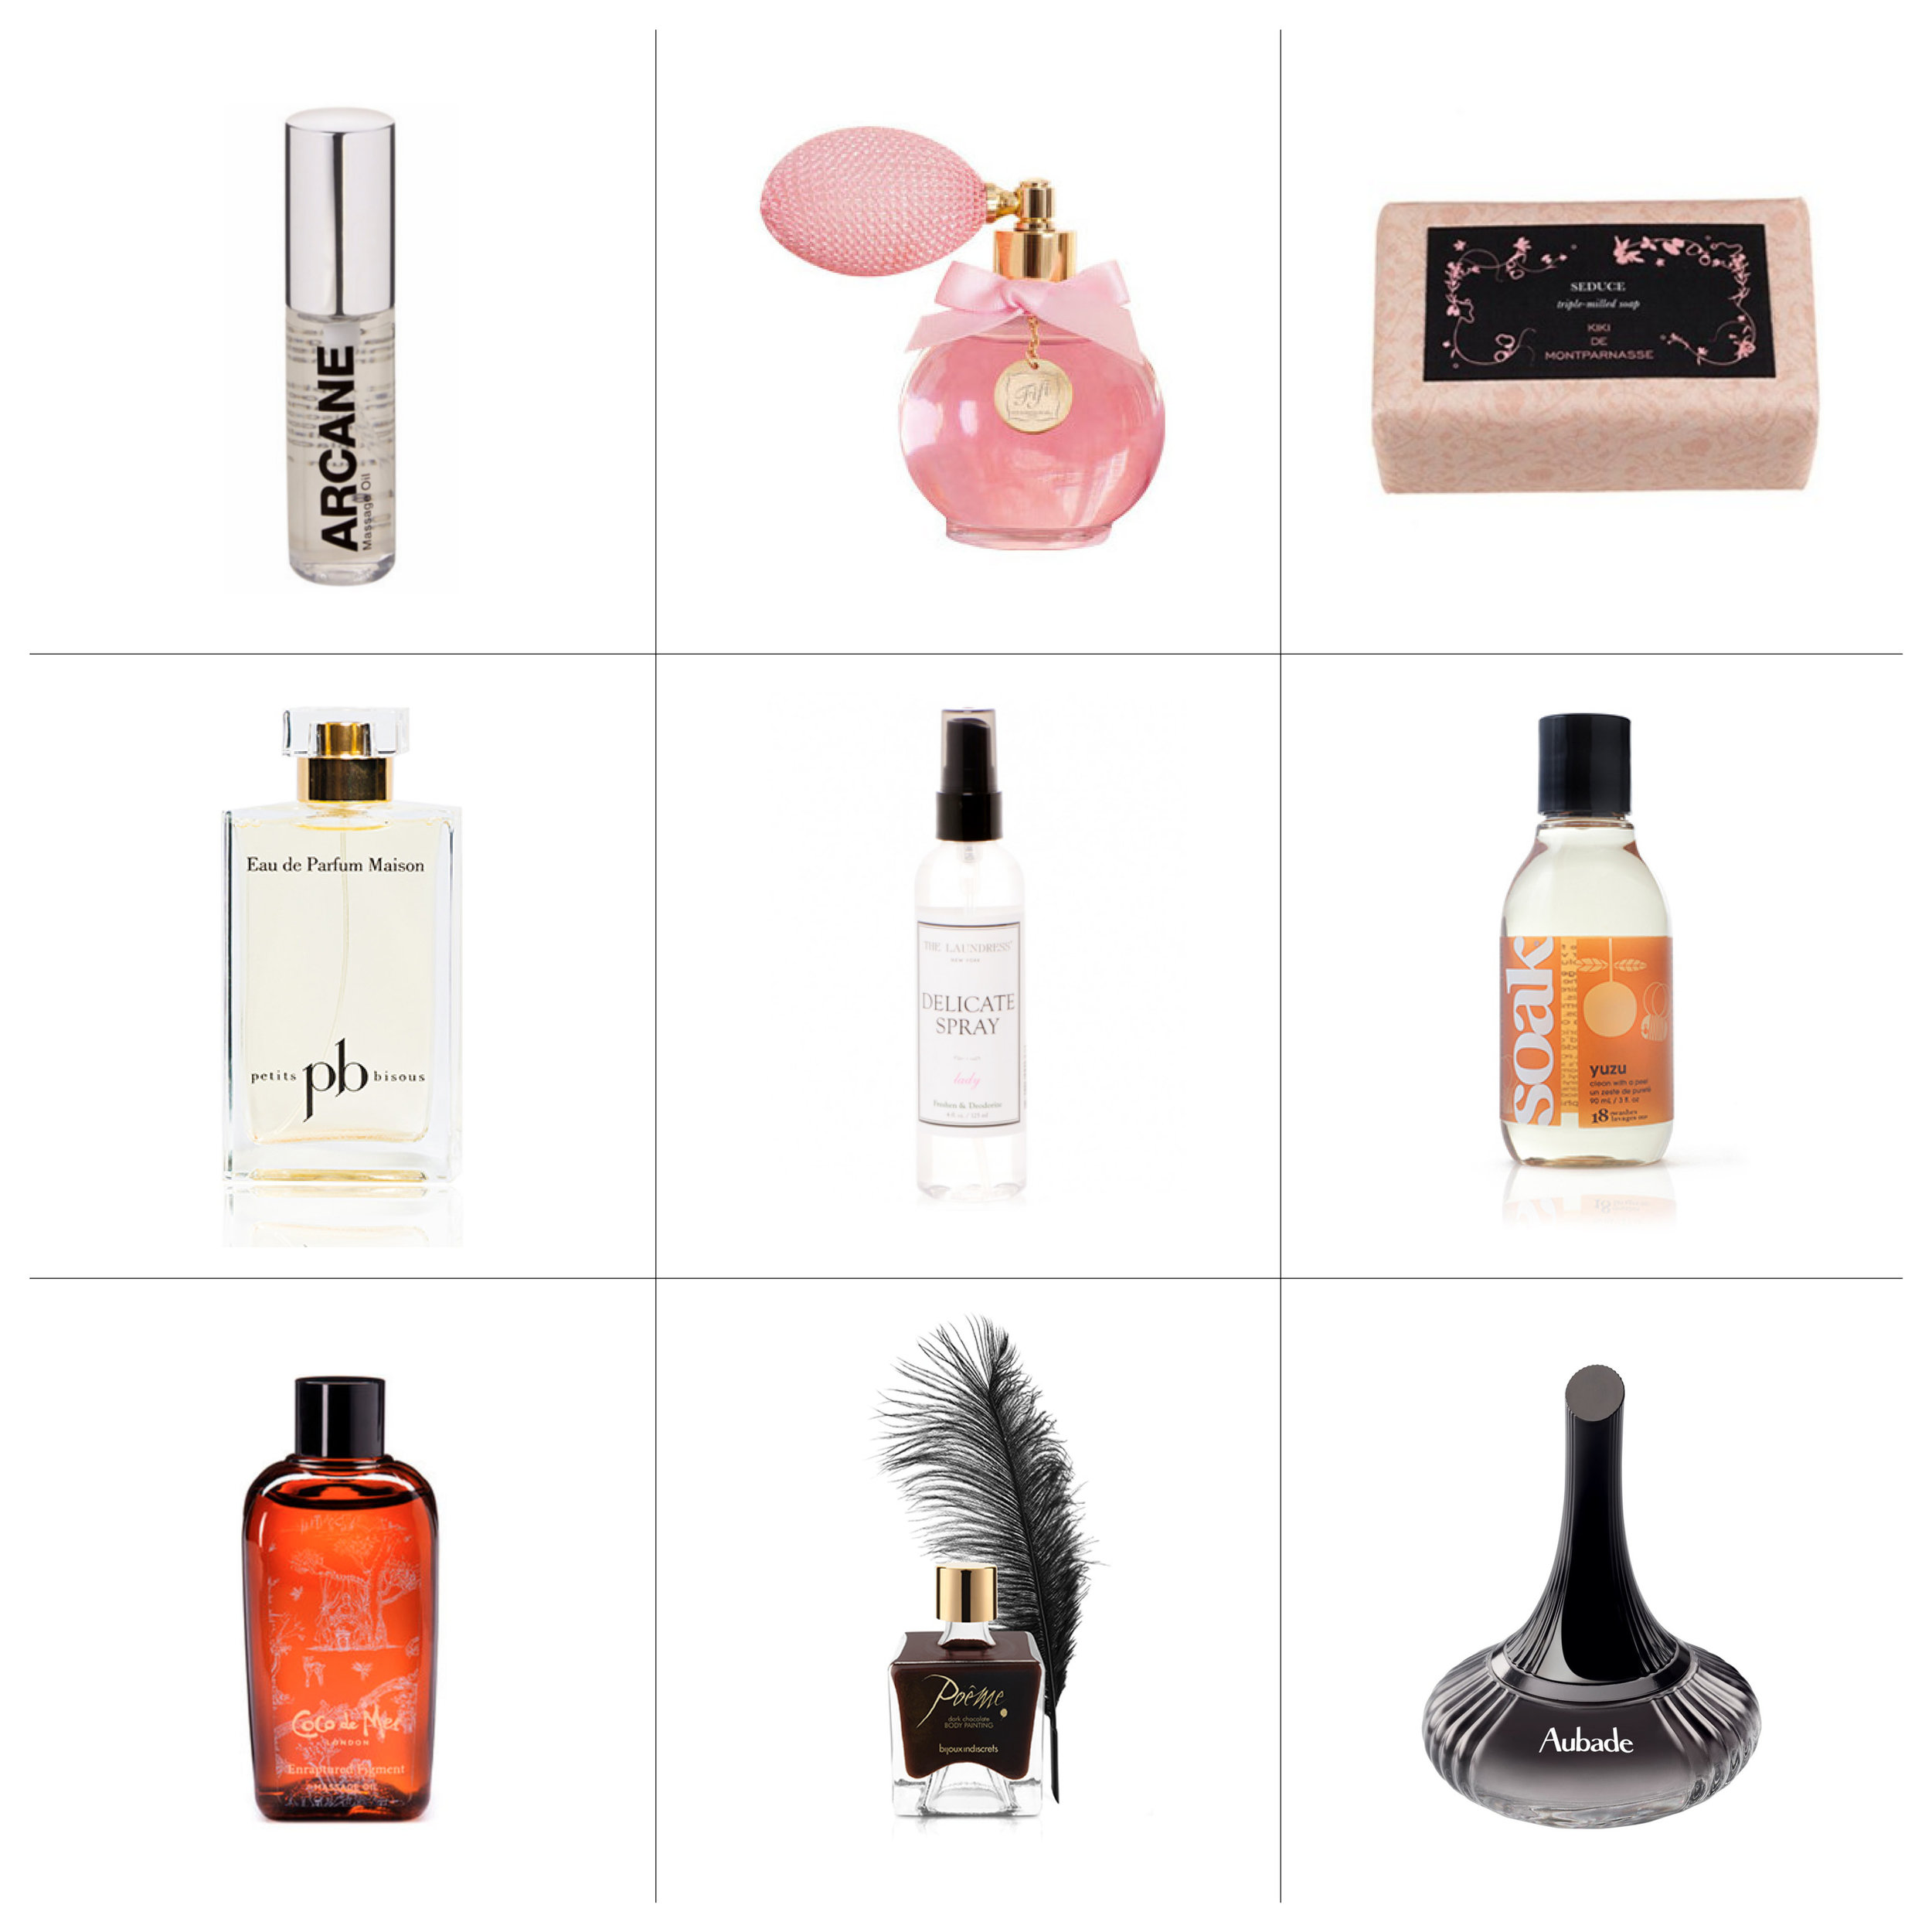 Lingerie-la-femme-valentines-day-gift-guide-lingerie-brand-lotions-and-potions-03